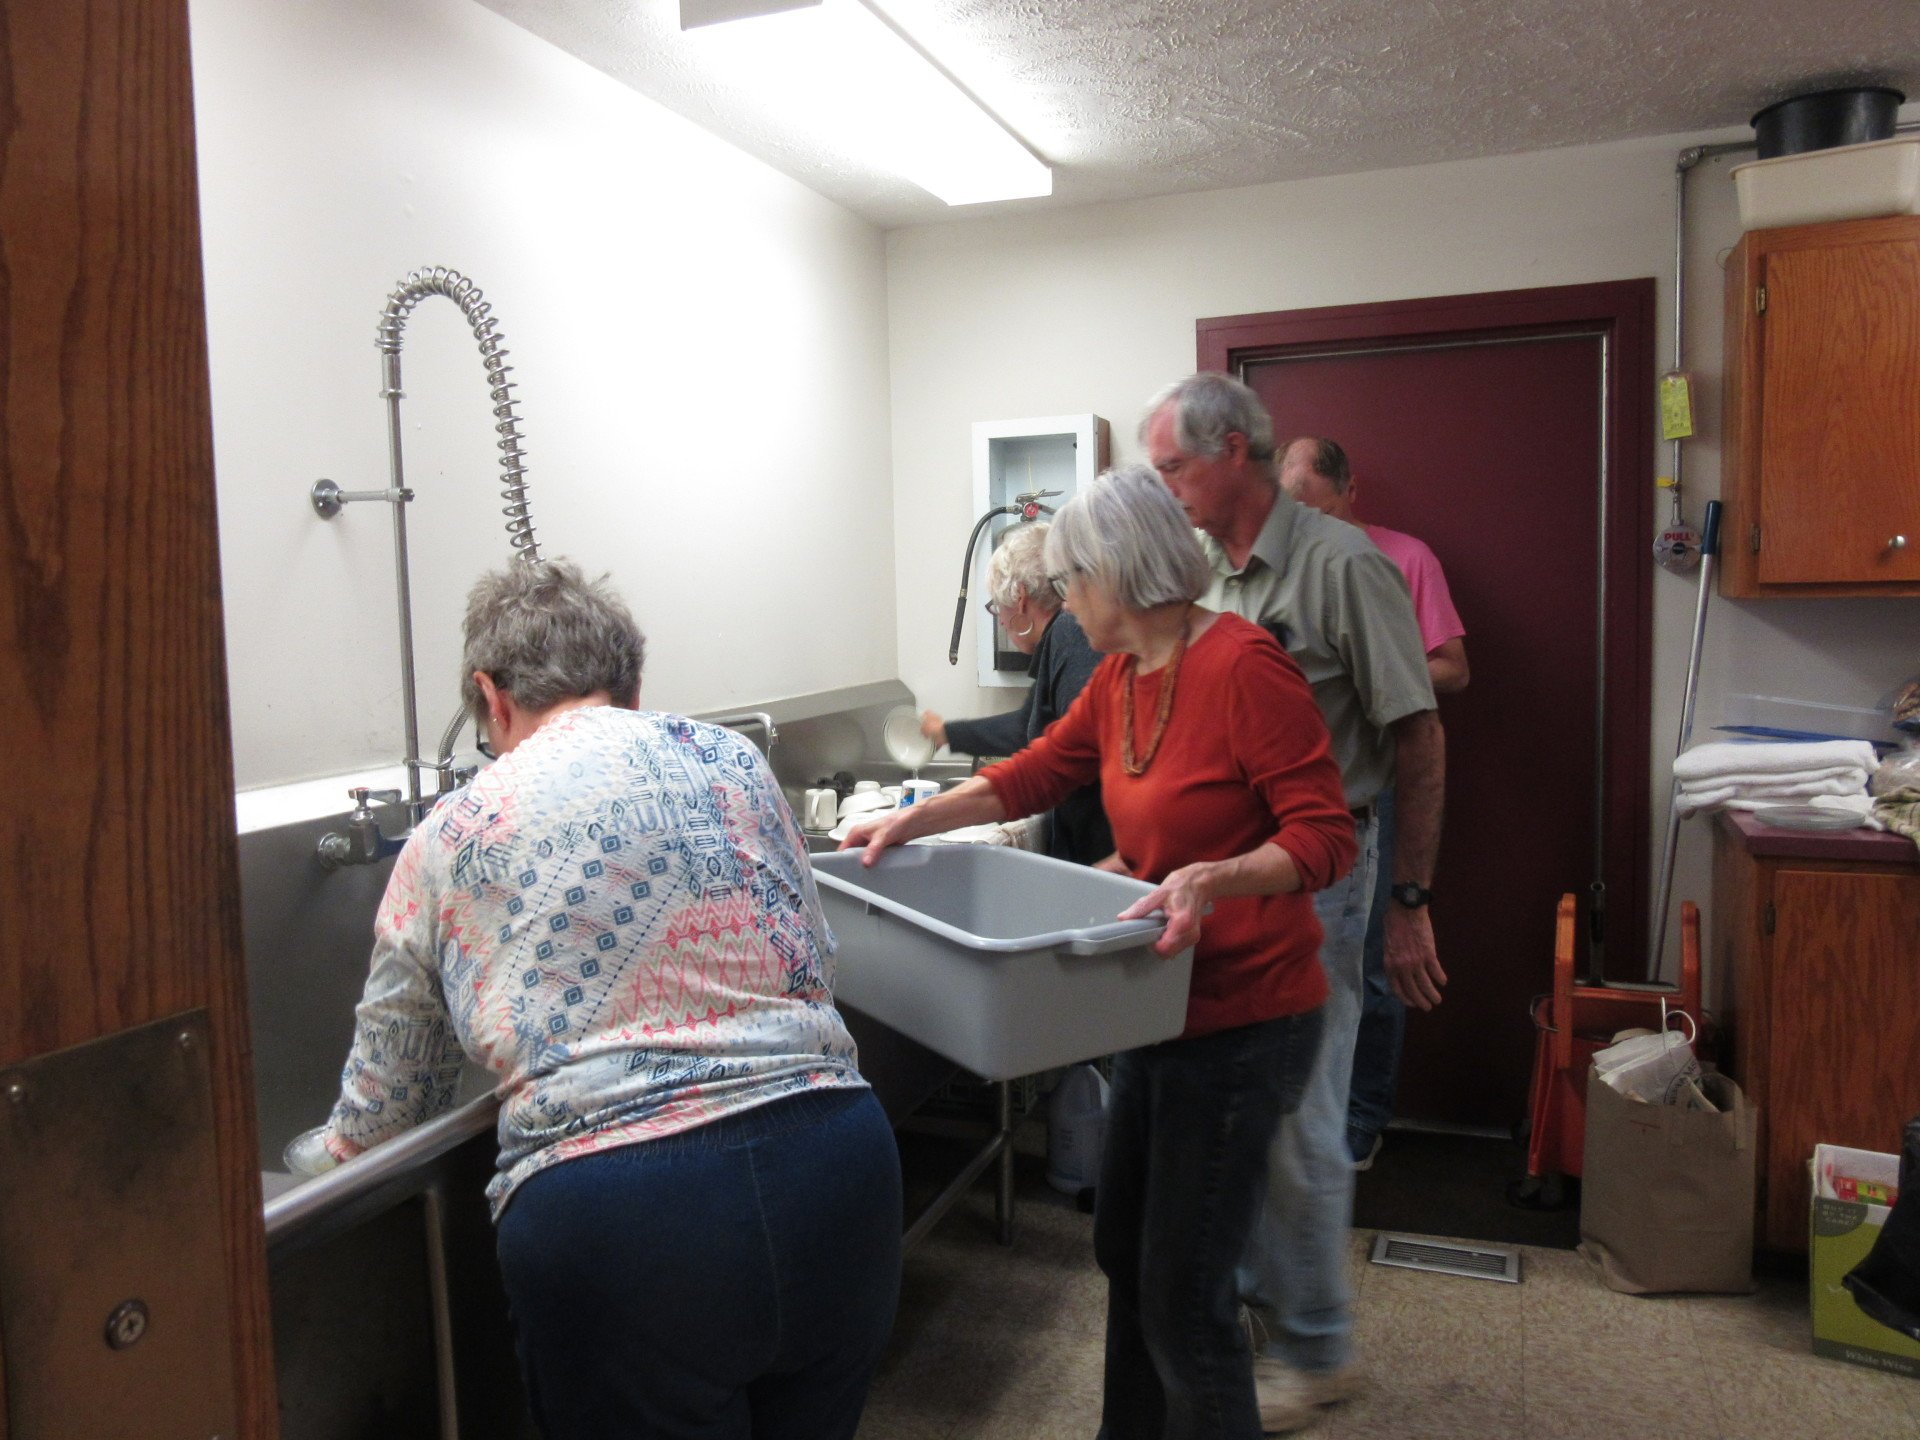 No throwaway dishes for us, thanks to a dedicated kitchen crew